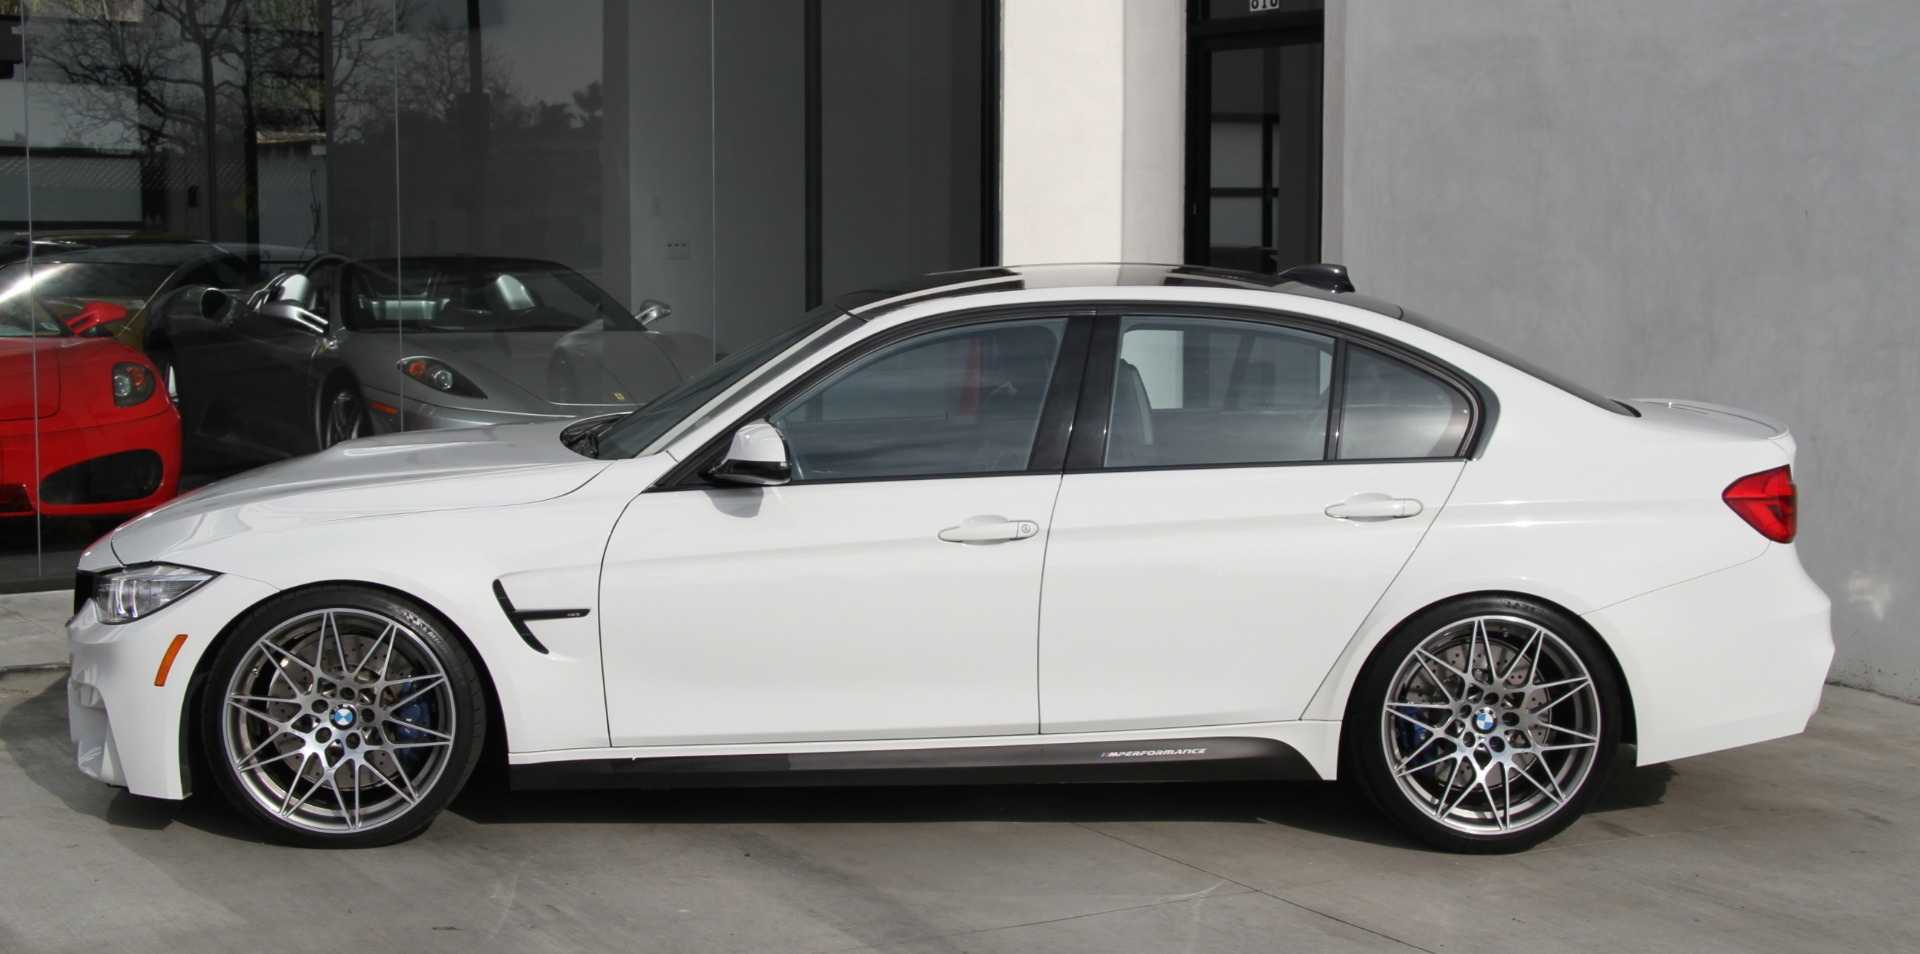 Bmw Dealership Near Me >> 2017 BMW M3 *** COMPETITION PACKAGE *** Stock # 6094 for sale near Redondo Beach, CA | CA BMW Dealer